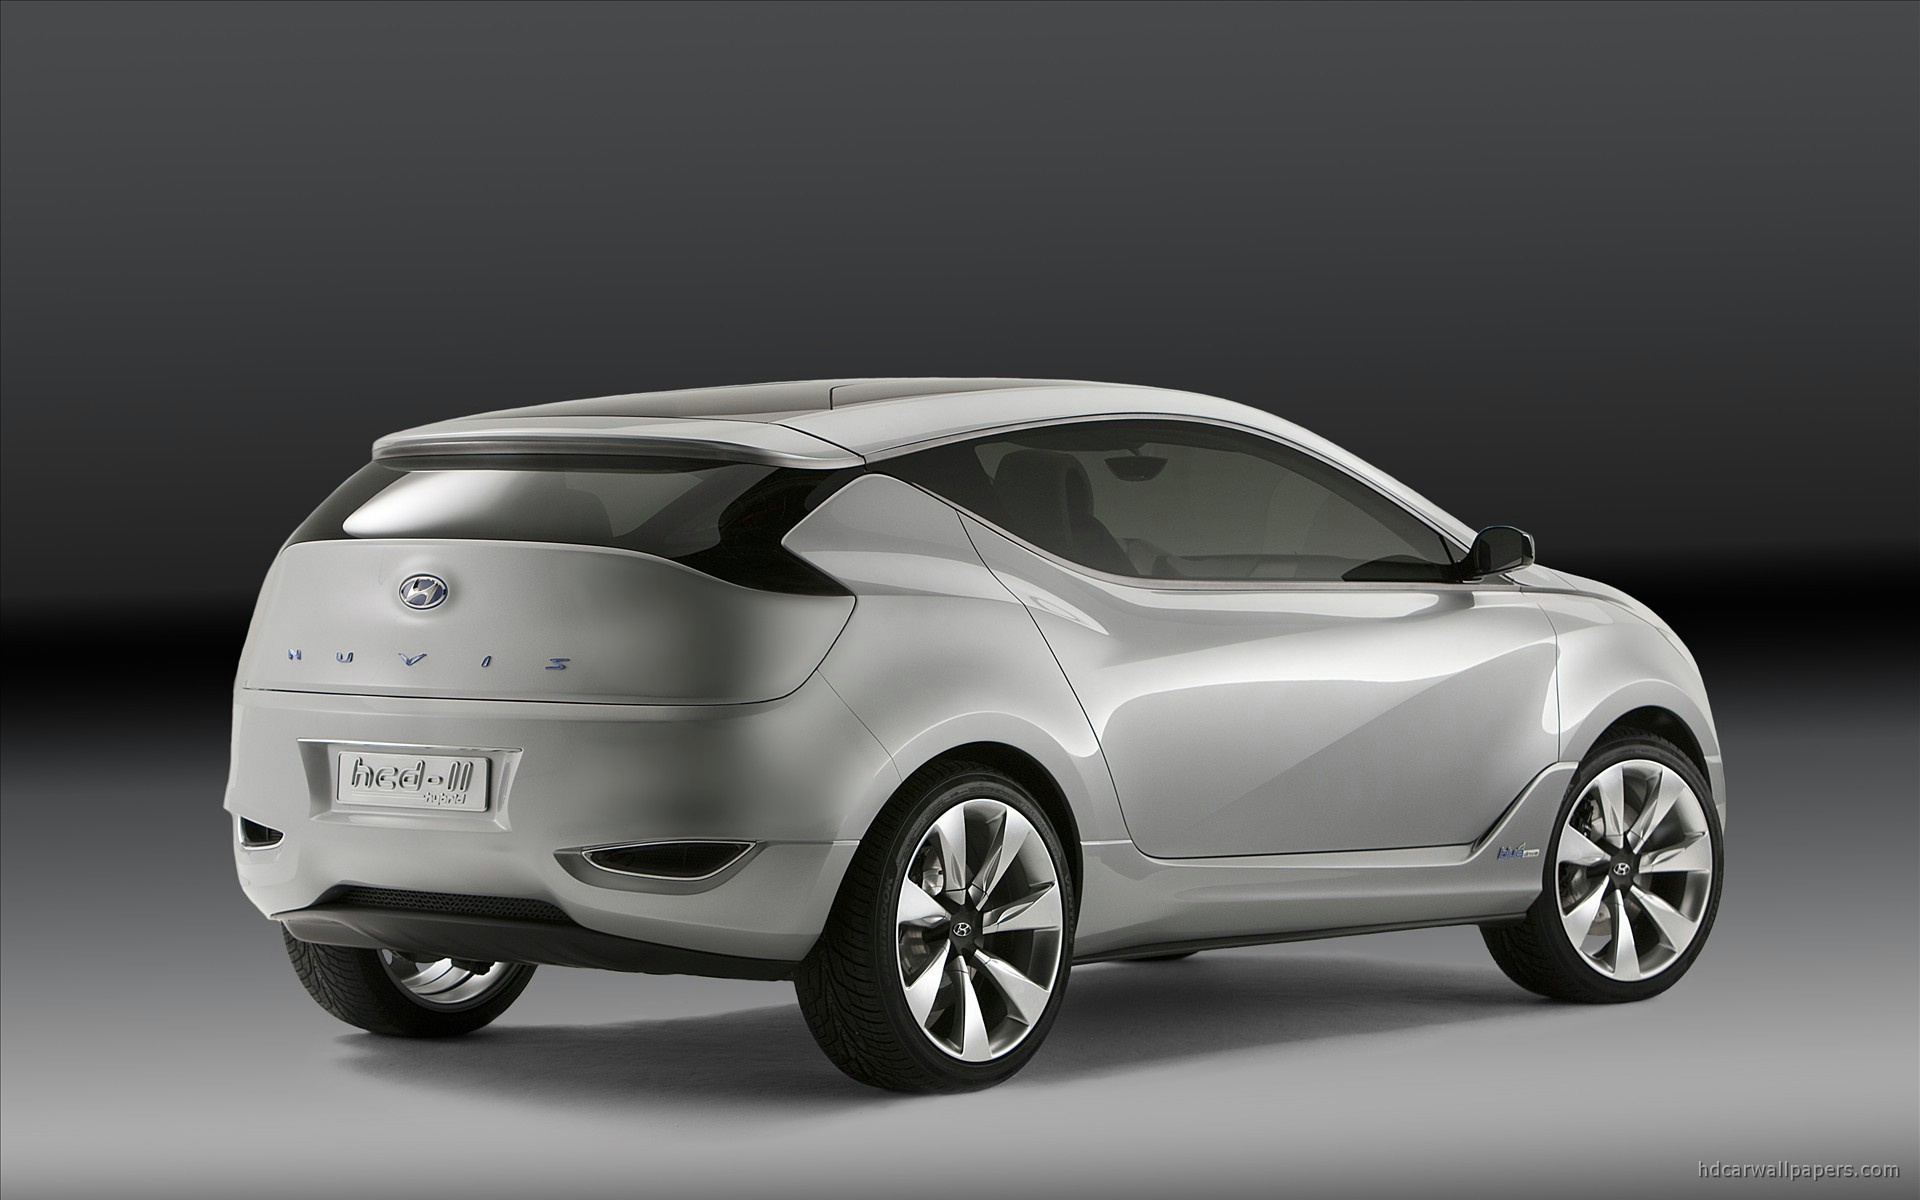 Hyundai Nuvis Wallpapers Vehicles Hq Hyundai Nuvis Pictures 4k